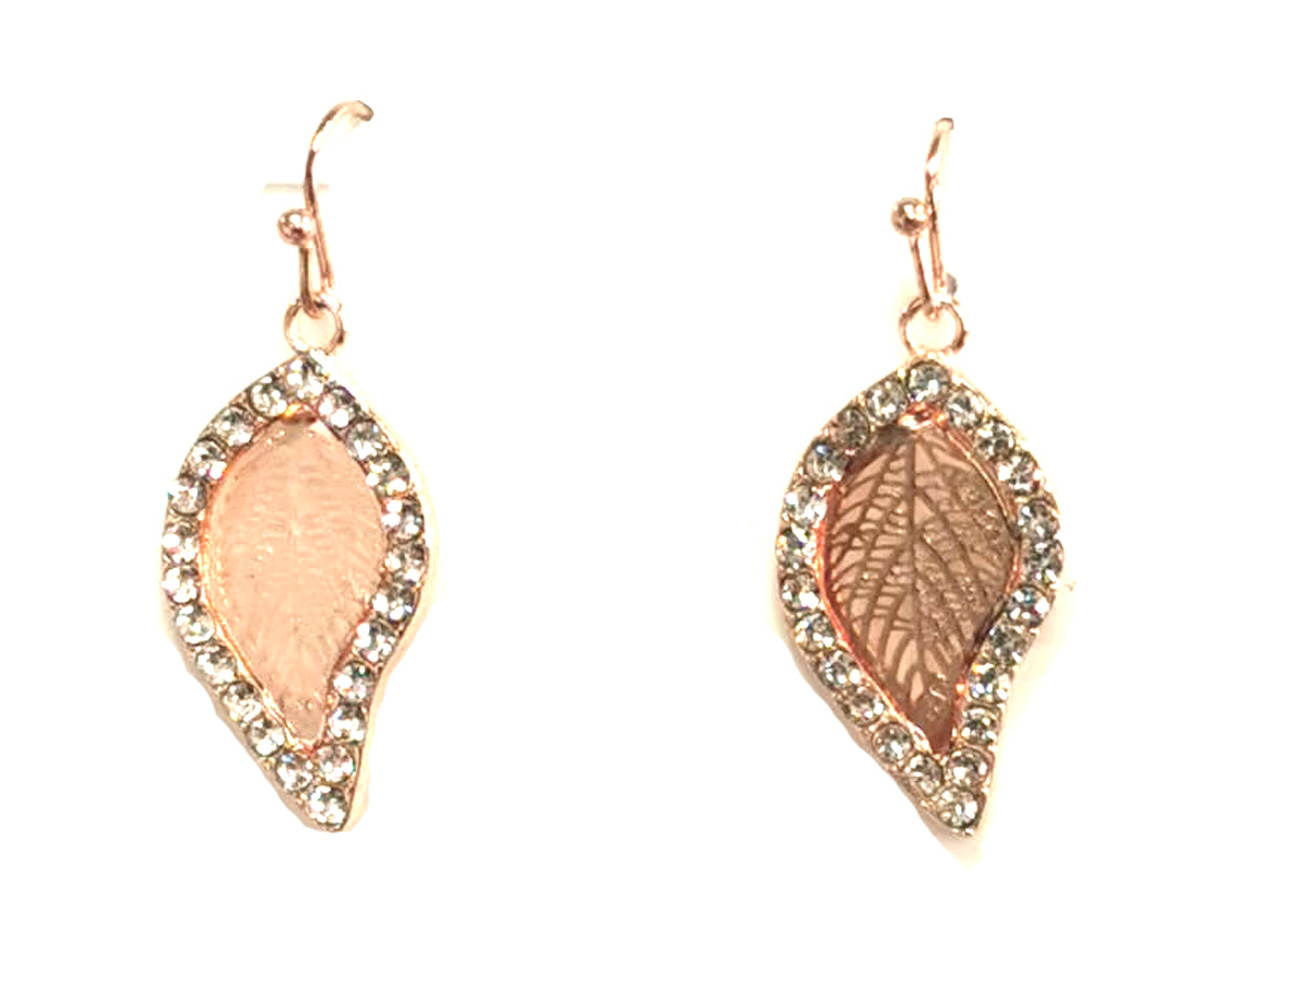 Lt Rose Gold With Crystal Stone Earrings